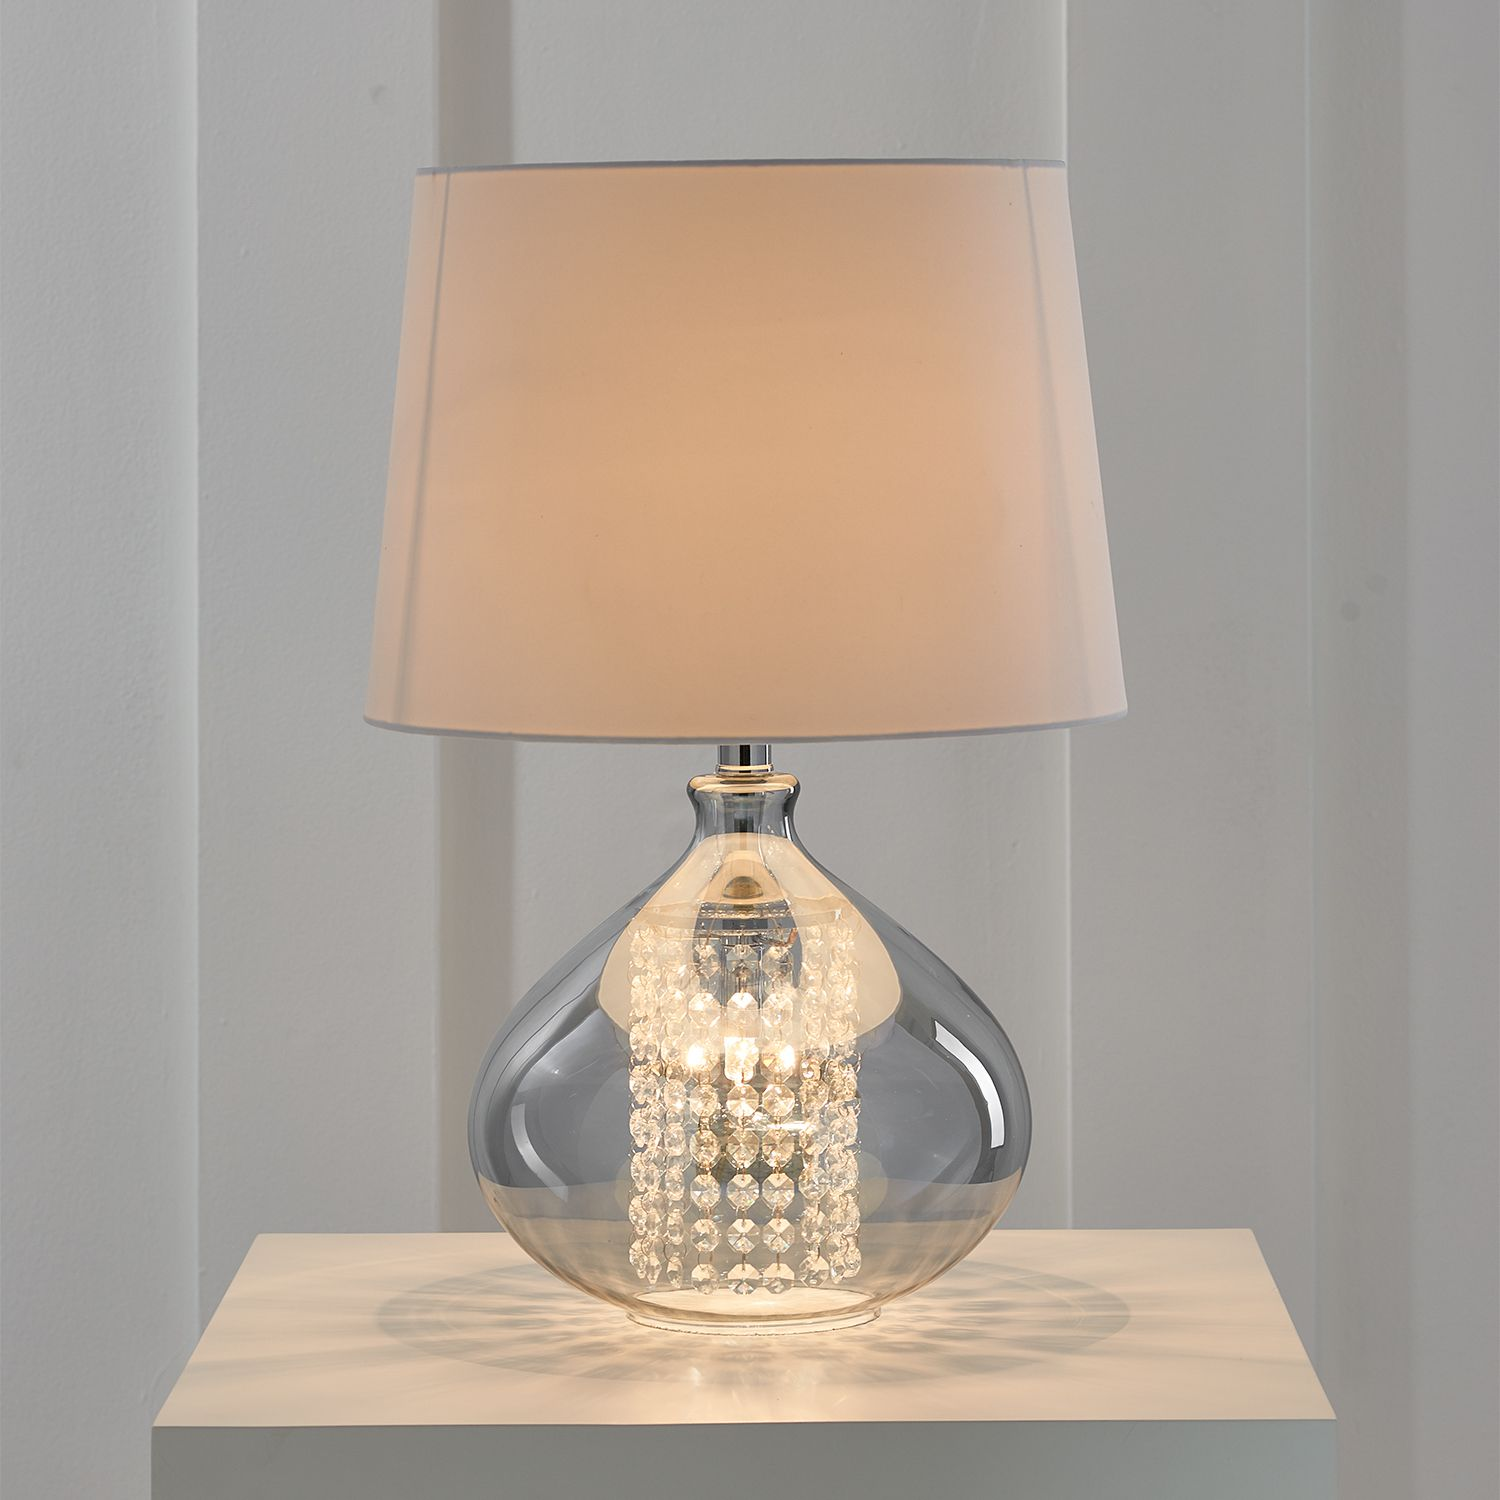 Encased Droplets Crystal Table Lamp Table Lamp Lamp Crystal